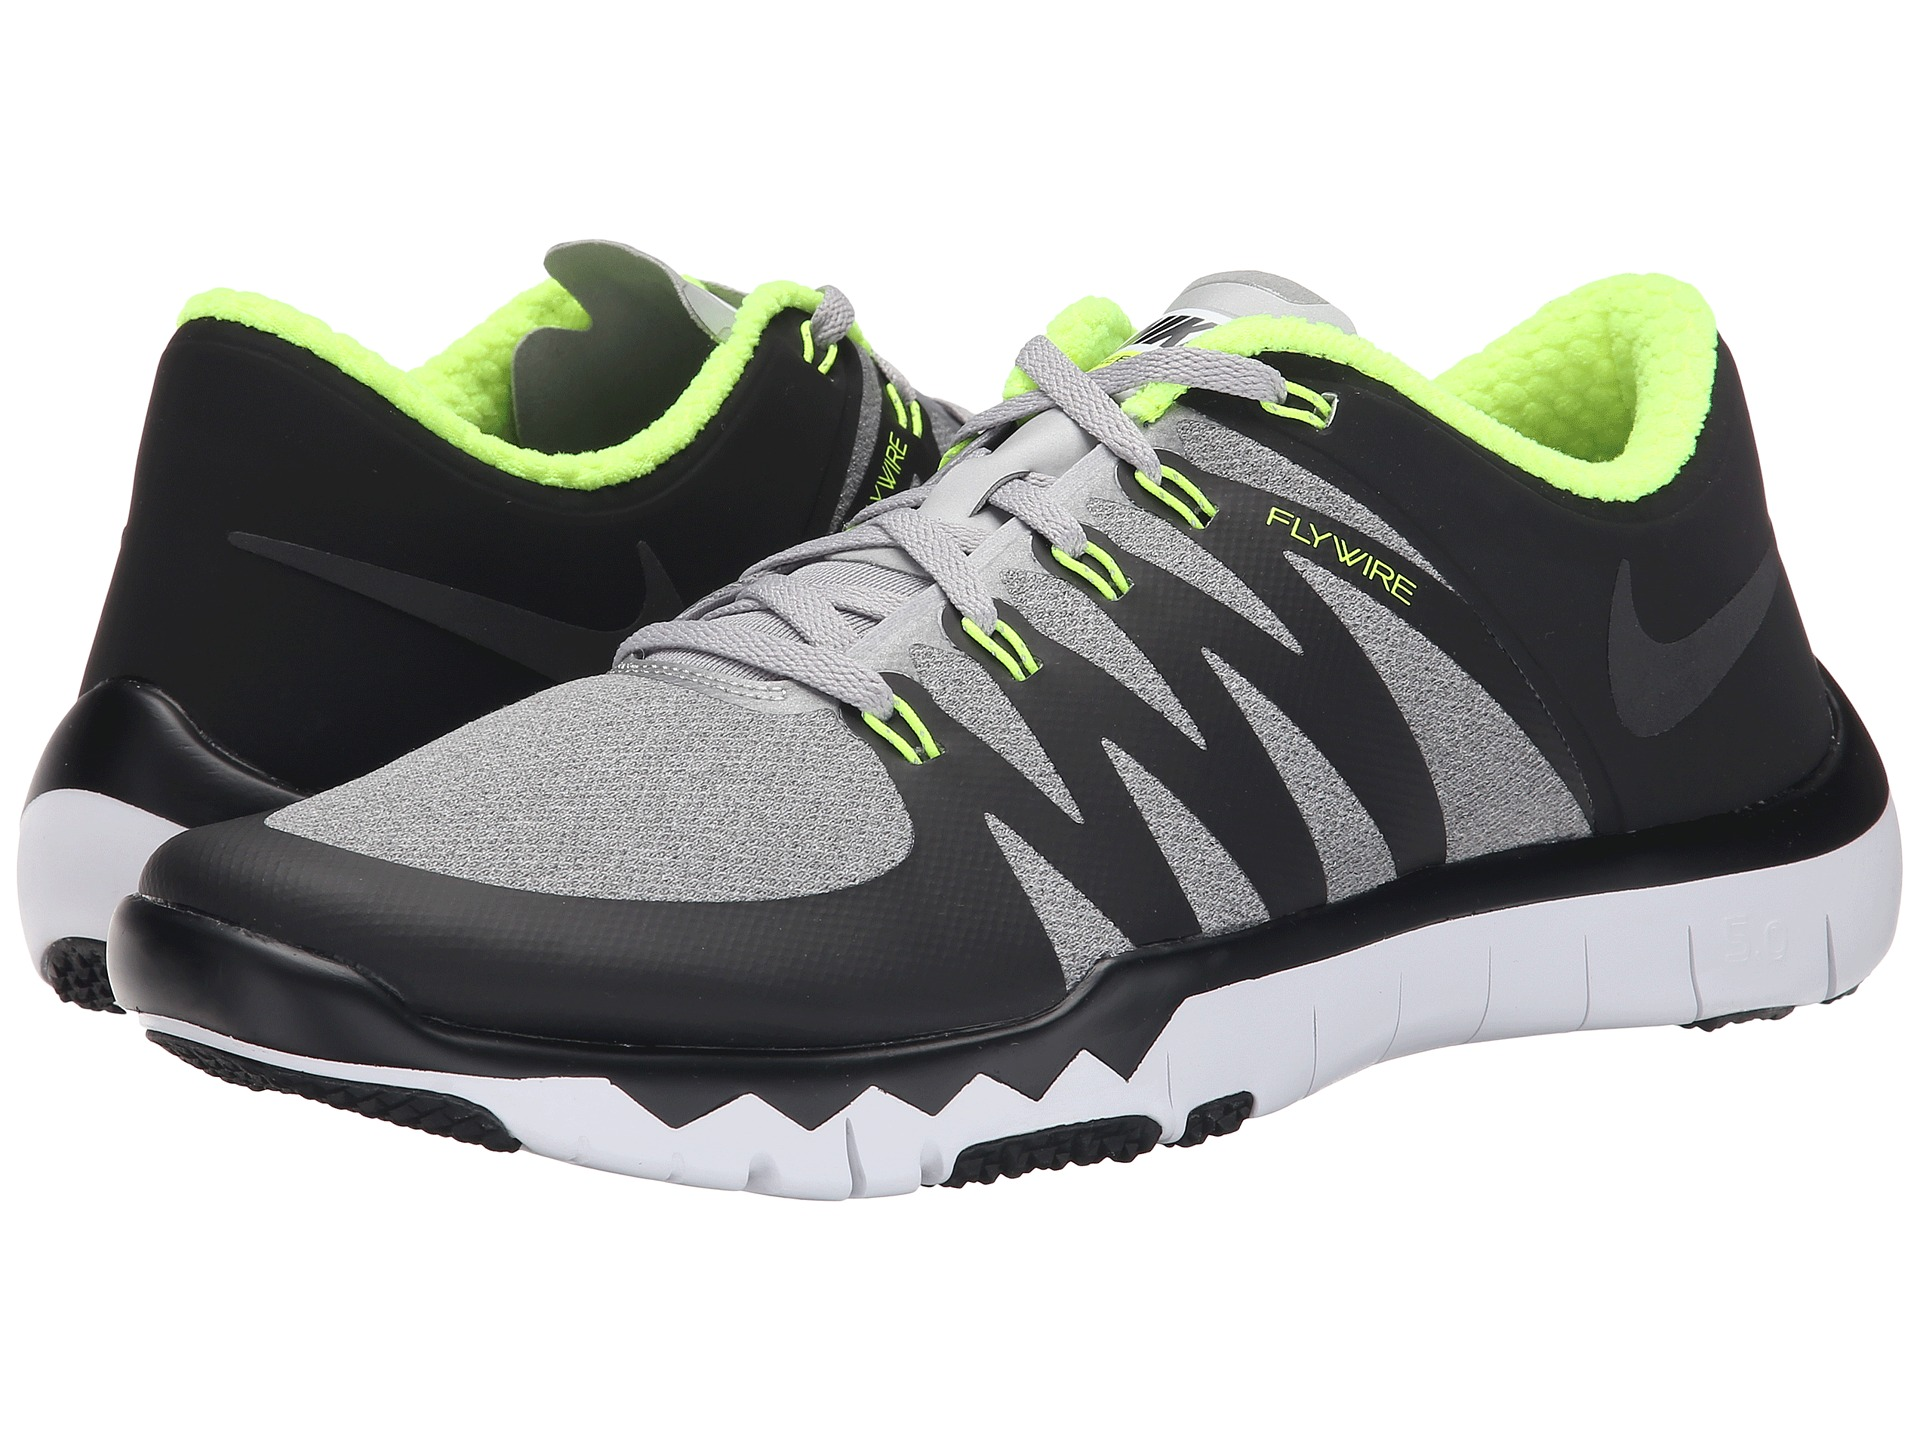 nike free trainer 5.0 zappos